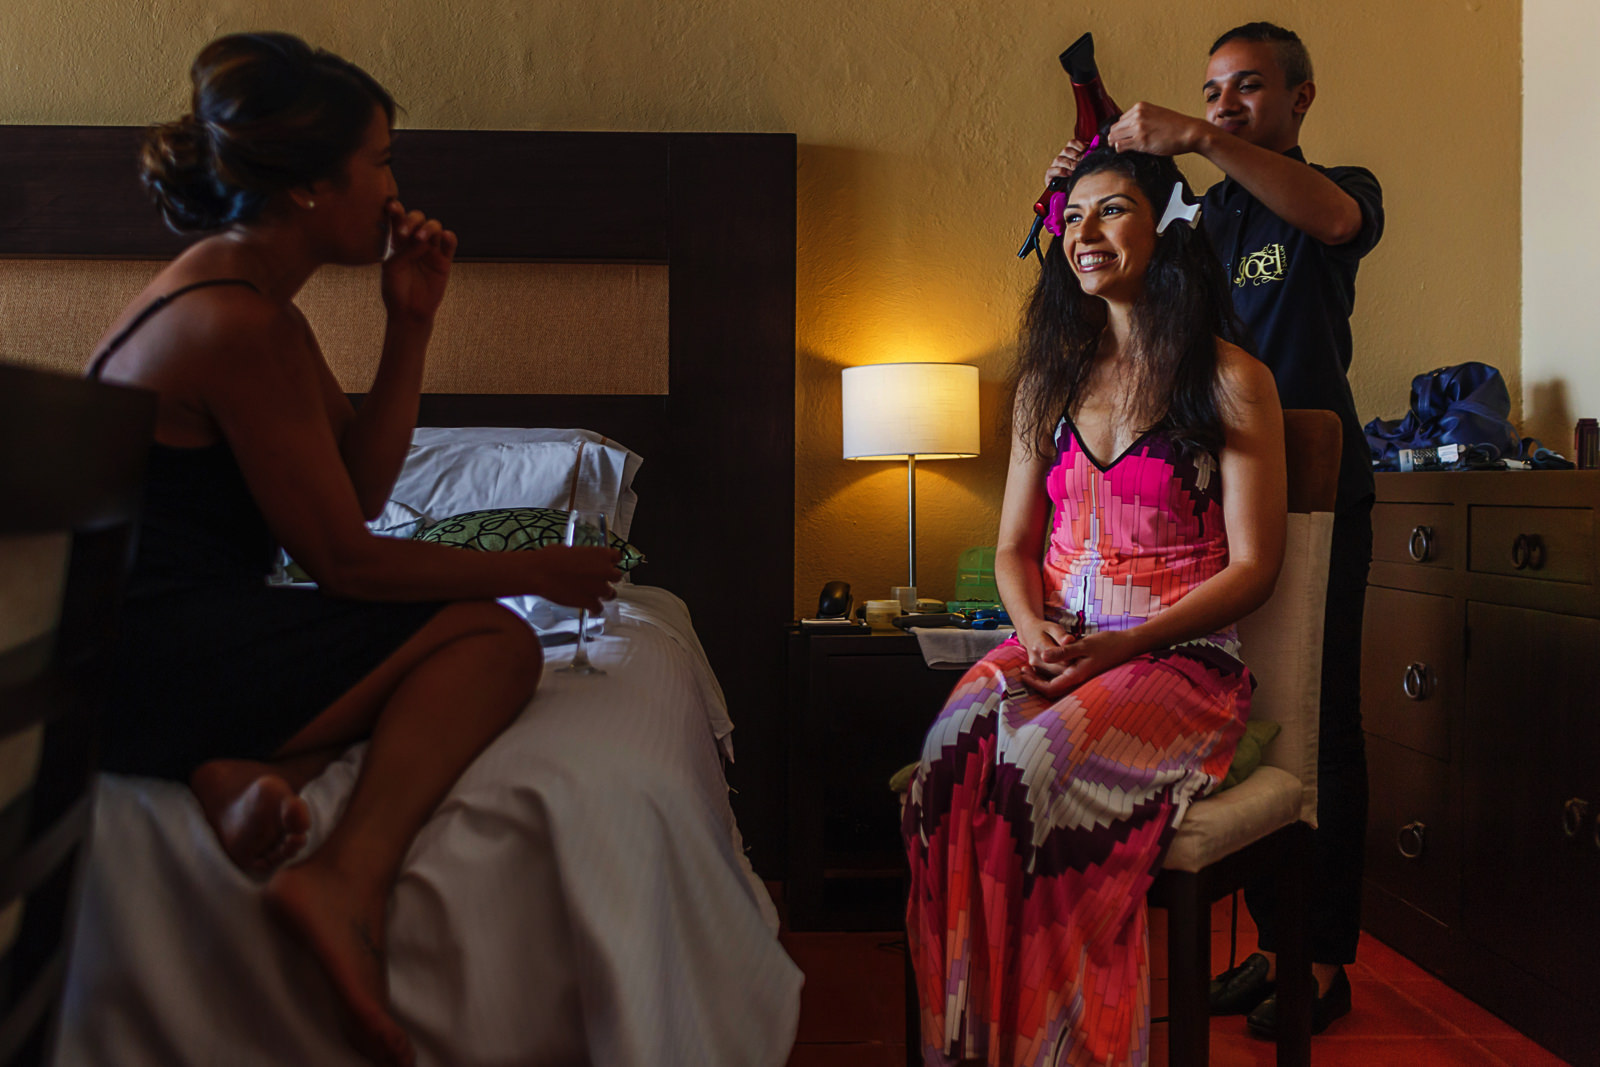 Bride getting her hair done before wedding ceremony while she laughs with bridesmaid